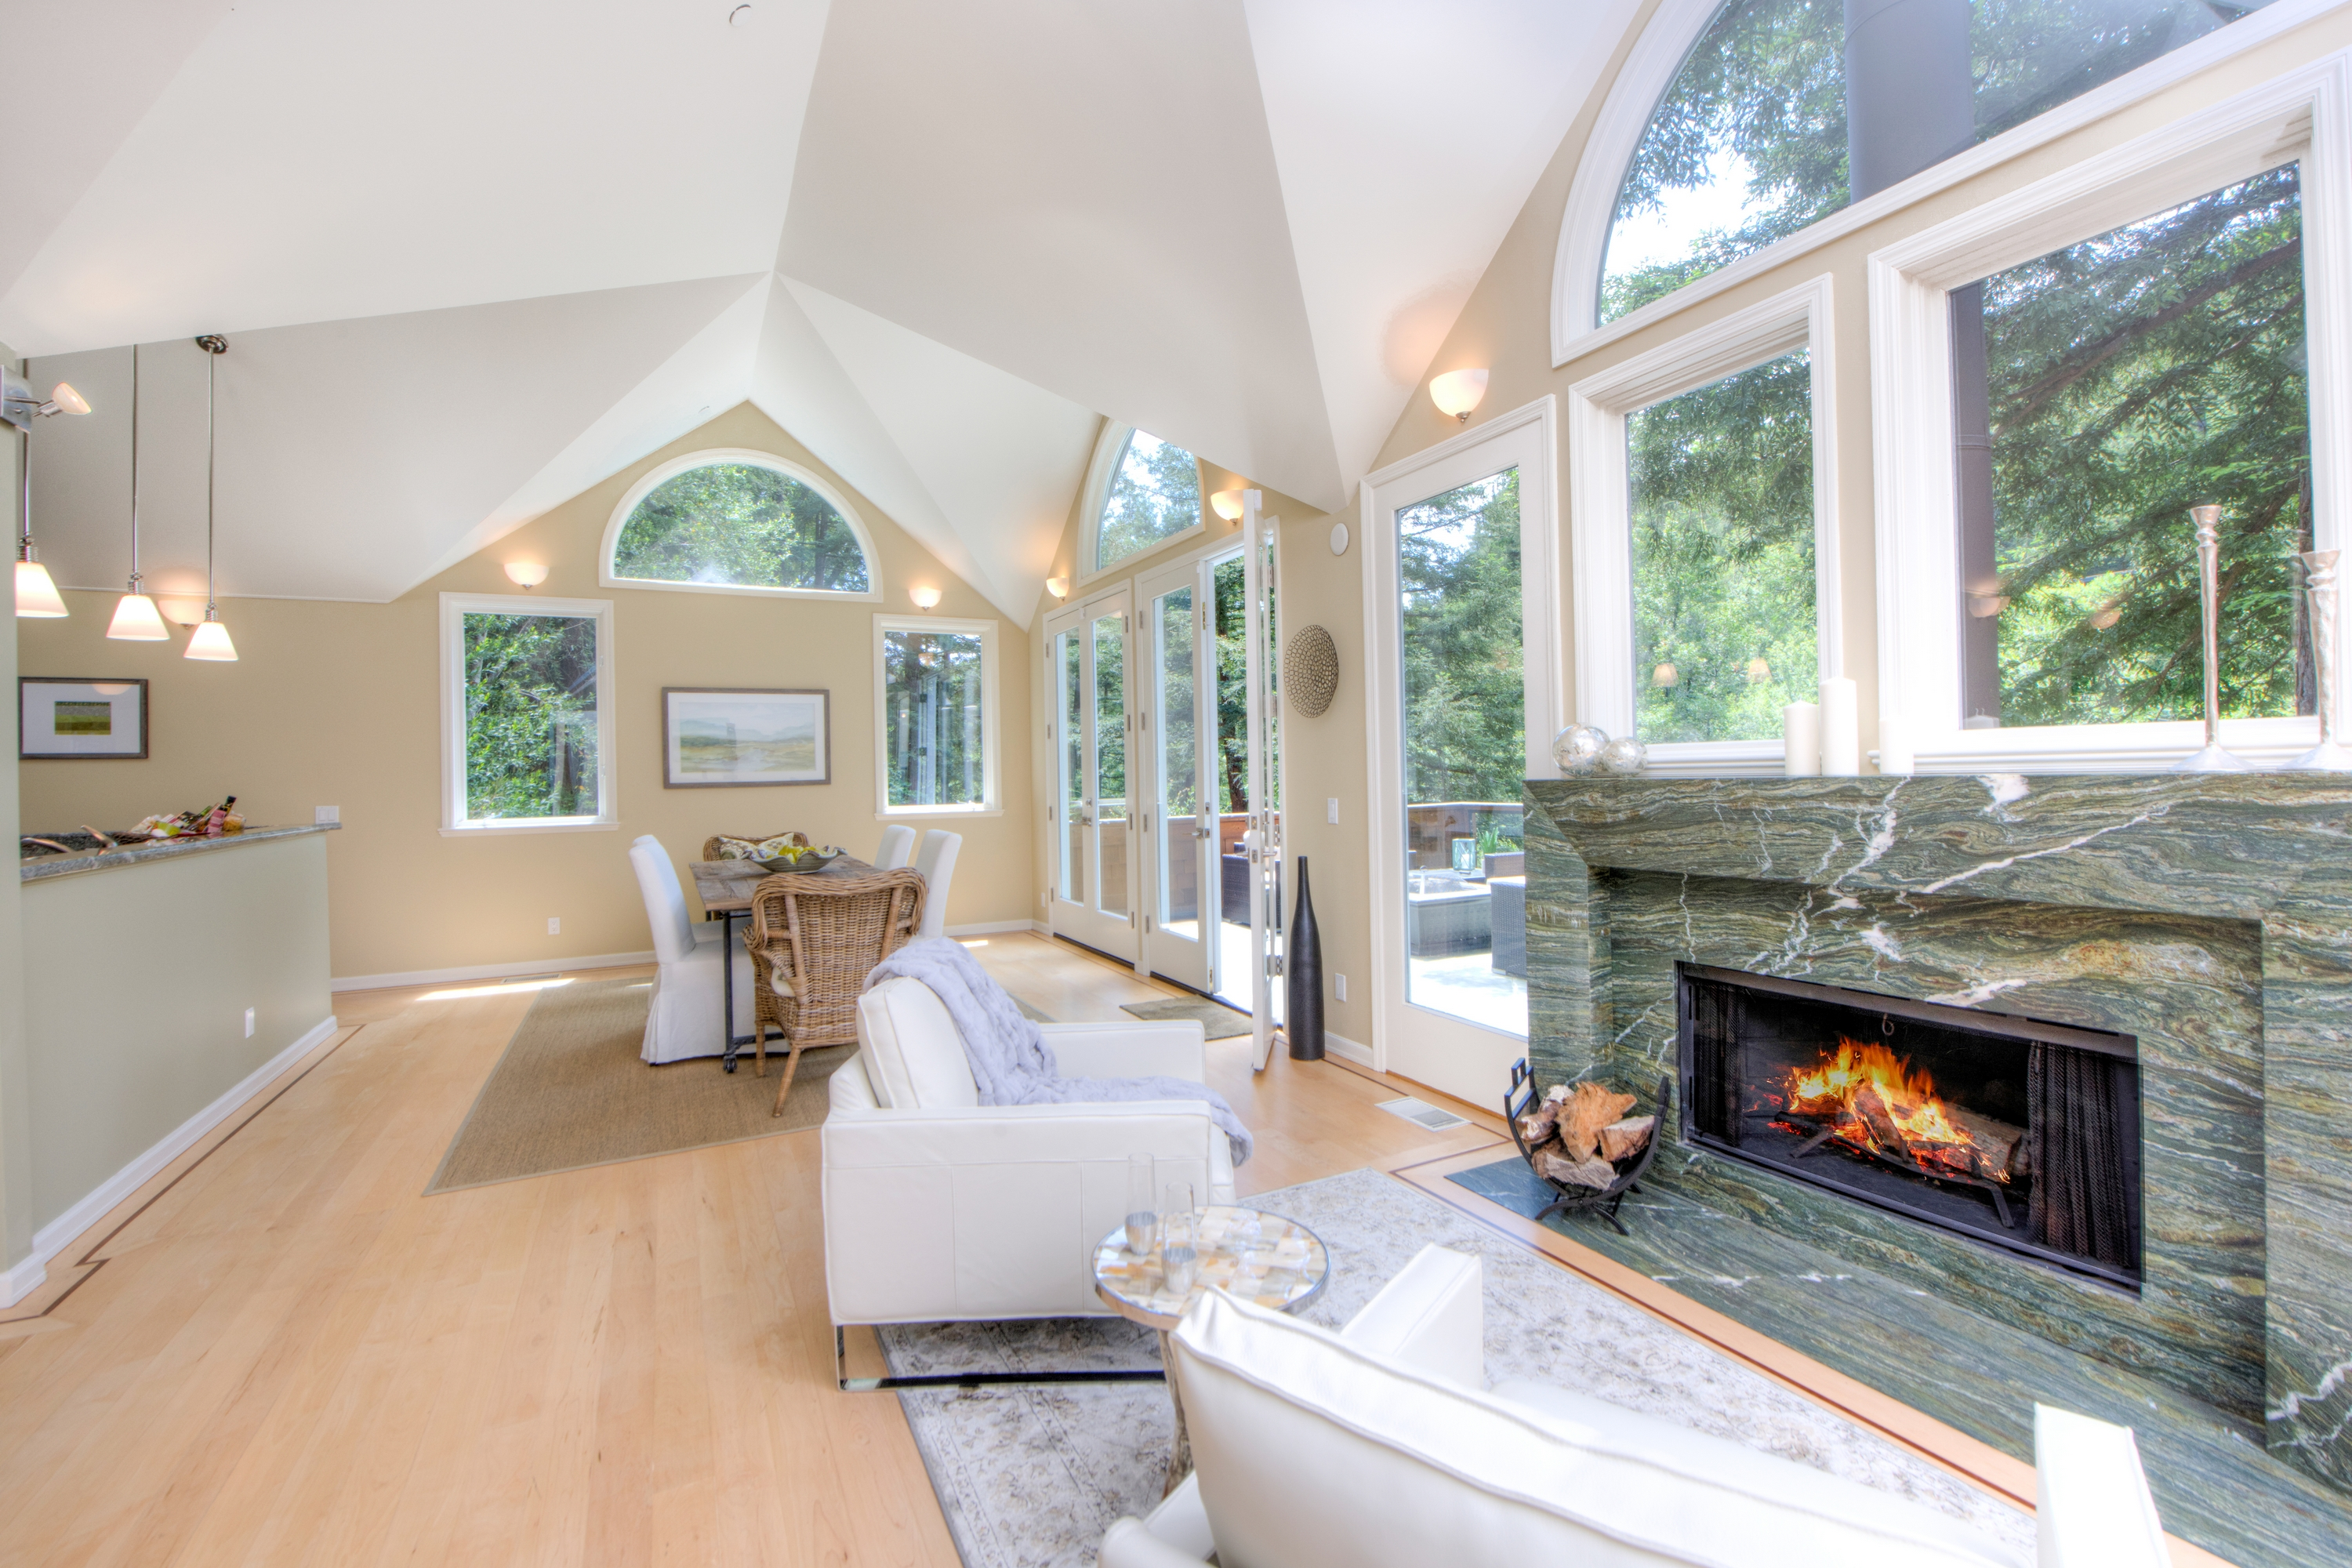 Single Family Home for Sale at California Living at Its Finest 399 Eldridge Ave Mill Valley, California, 94941 United States